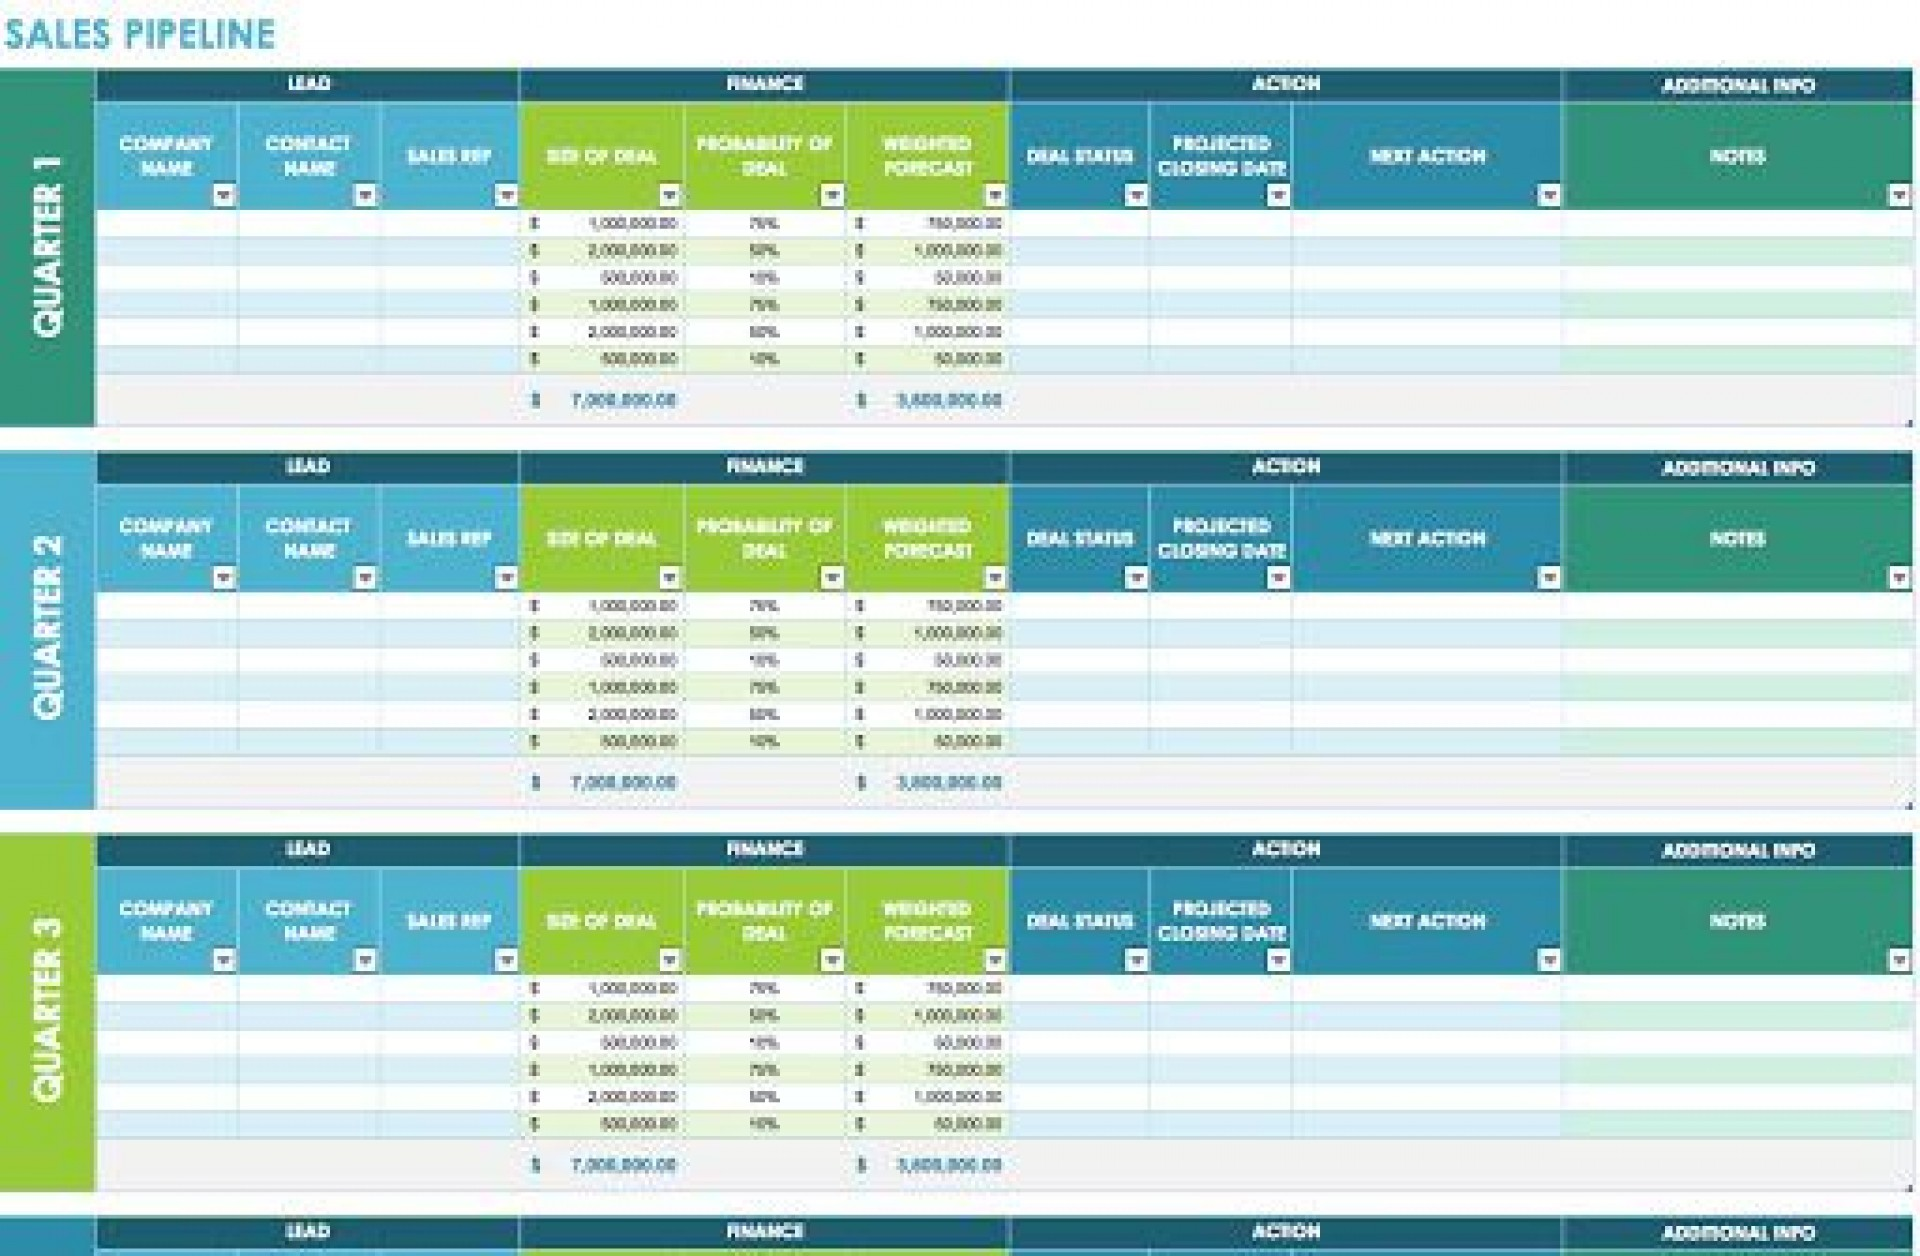 009 Marvelou Multiple Project Tracking Template Excel Picture  Free Download Xl Analysistabs-multiple-project-tracking-template-excel-2003-version1920